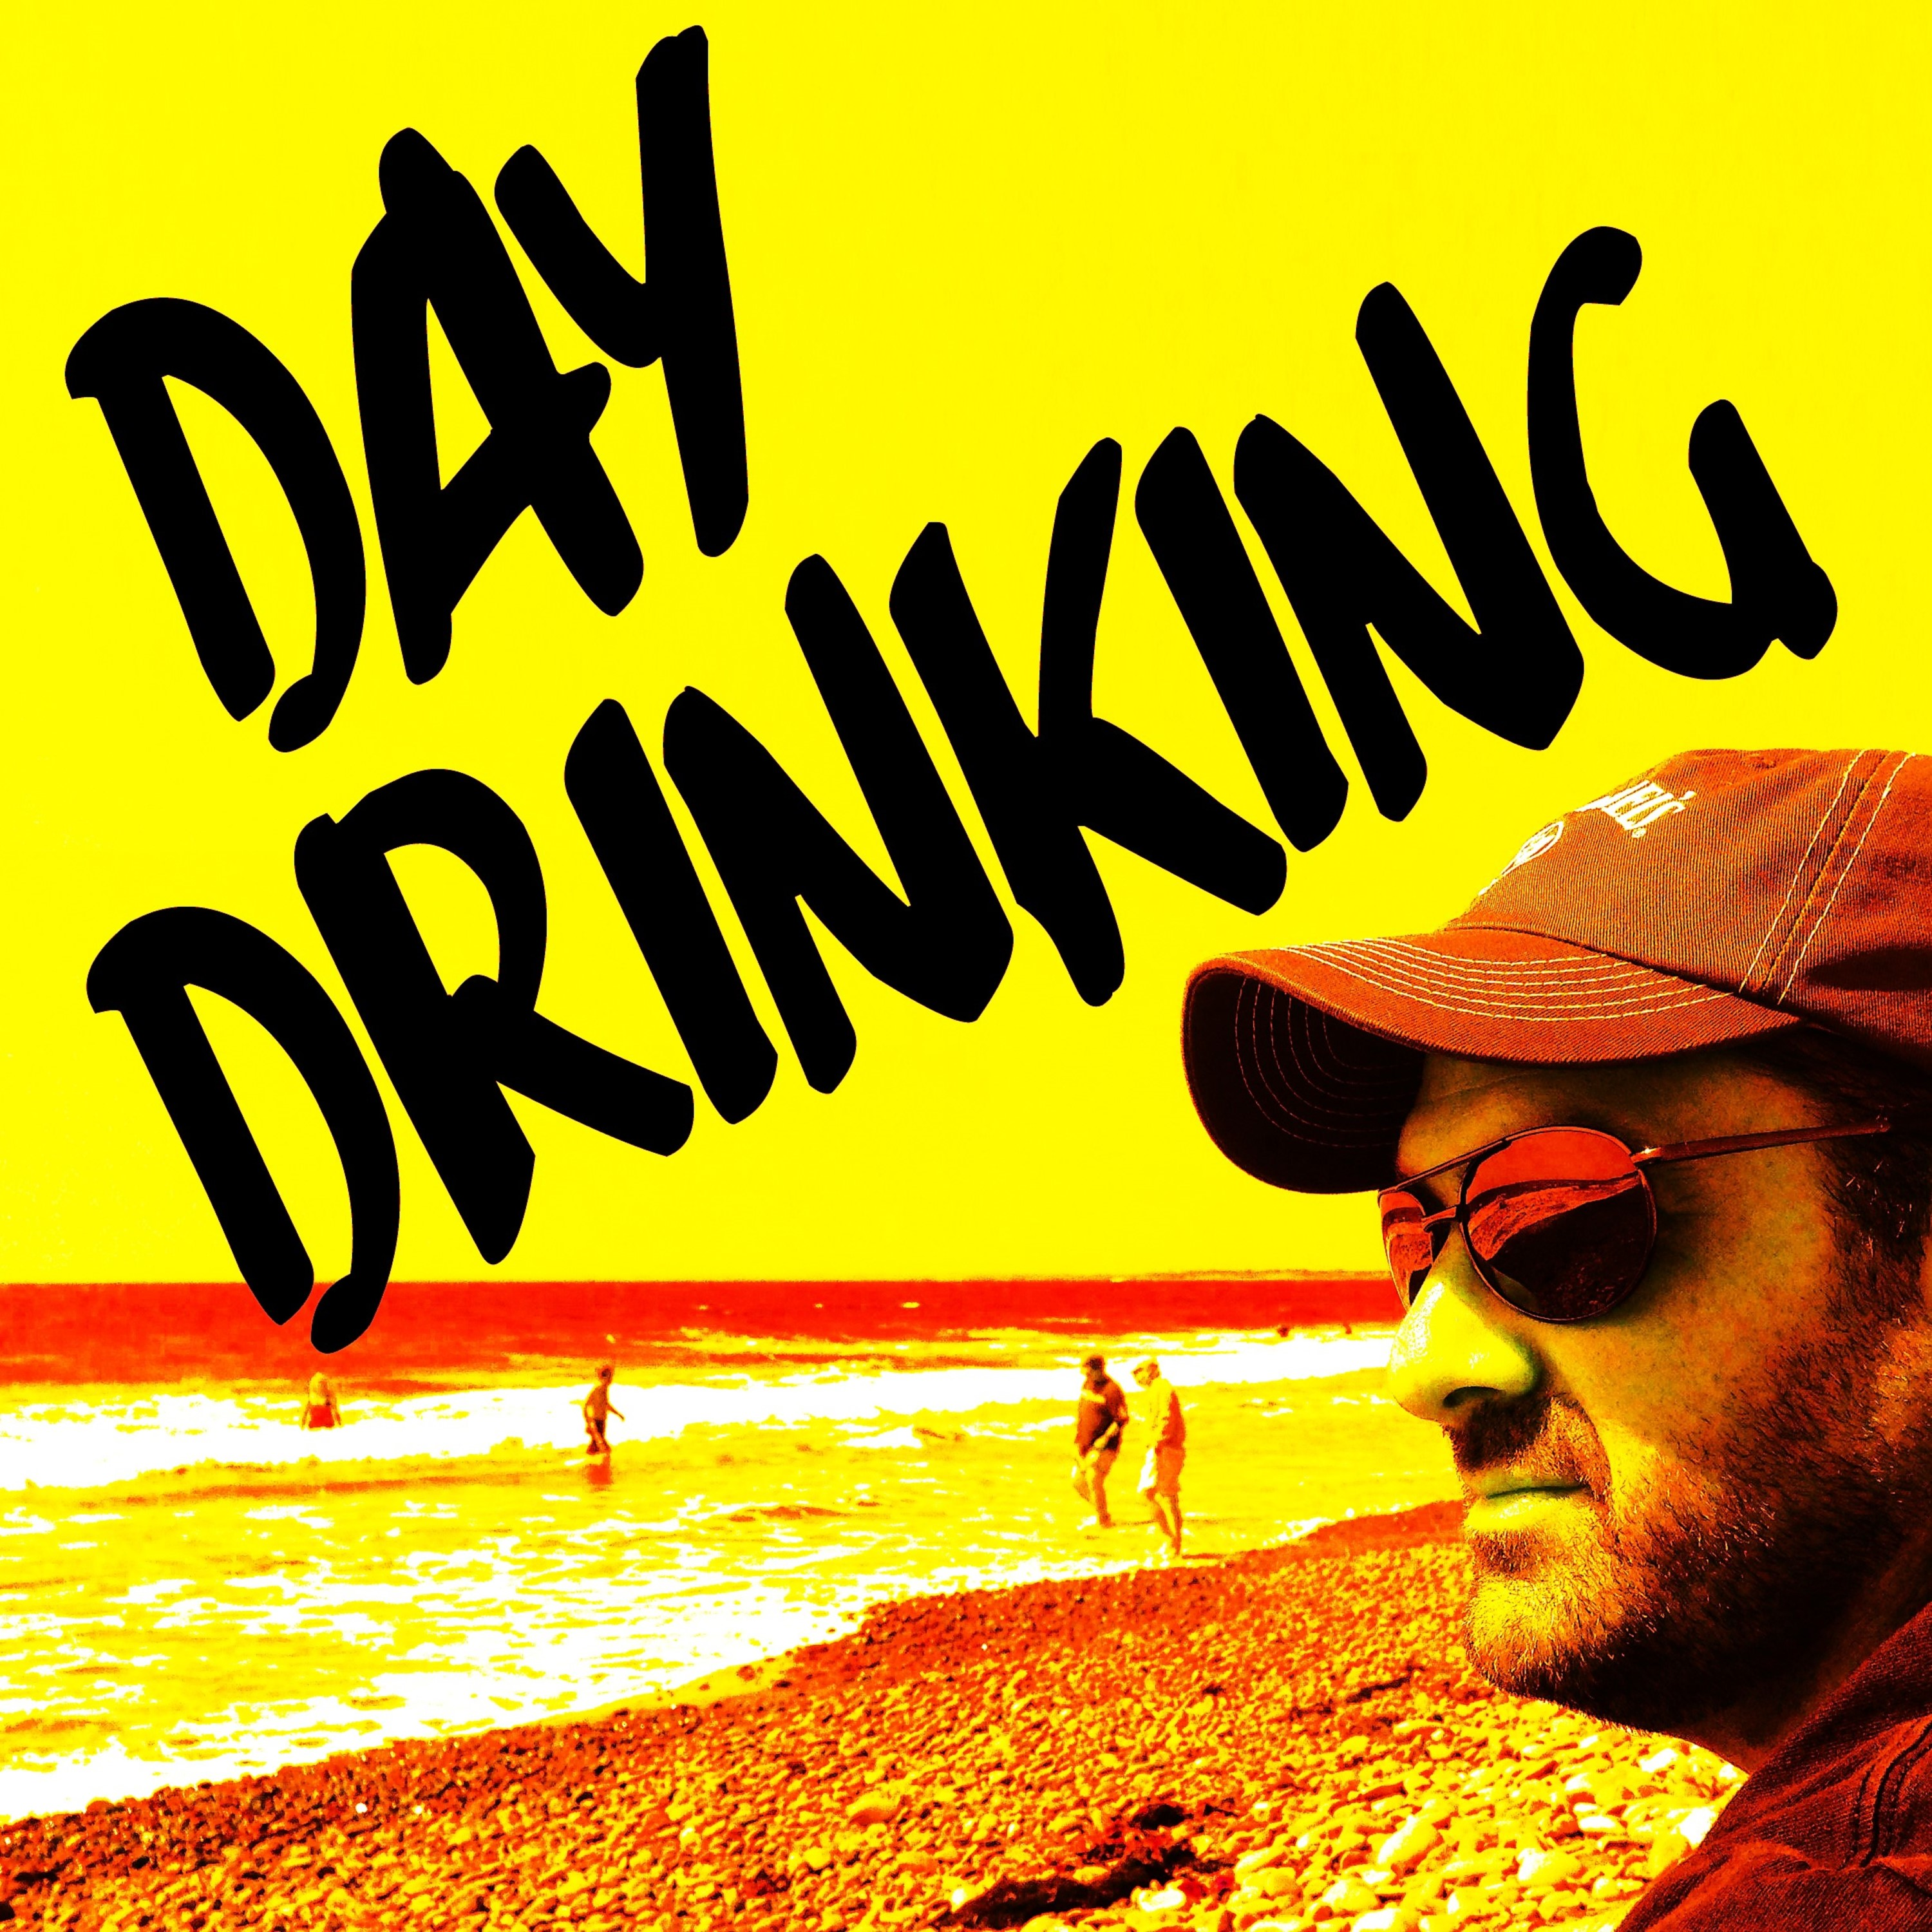 Art for Day Drinking by Guy Paul Thibault